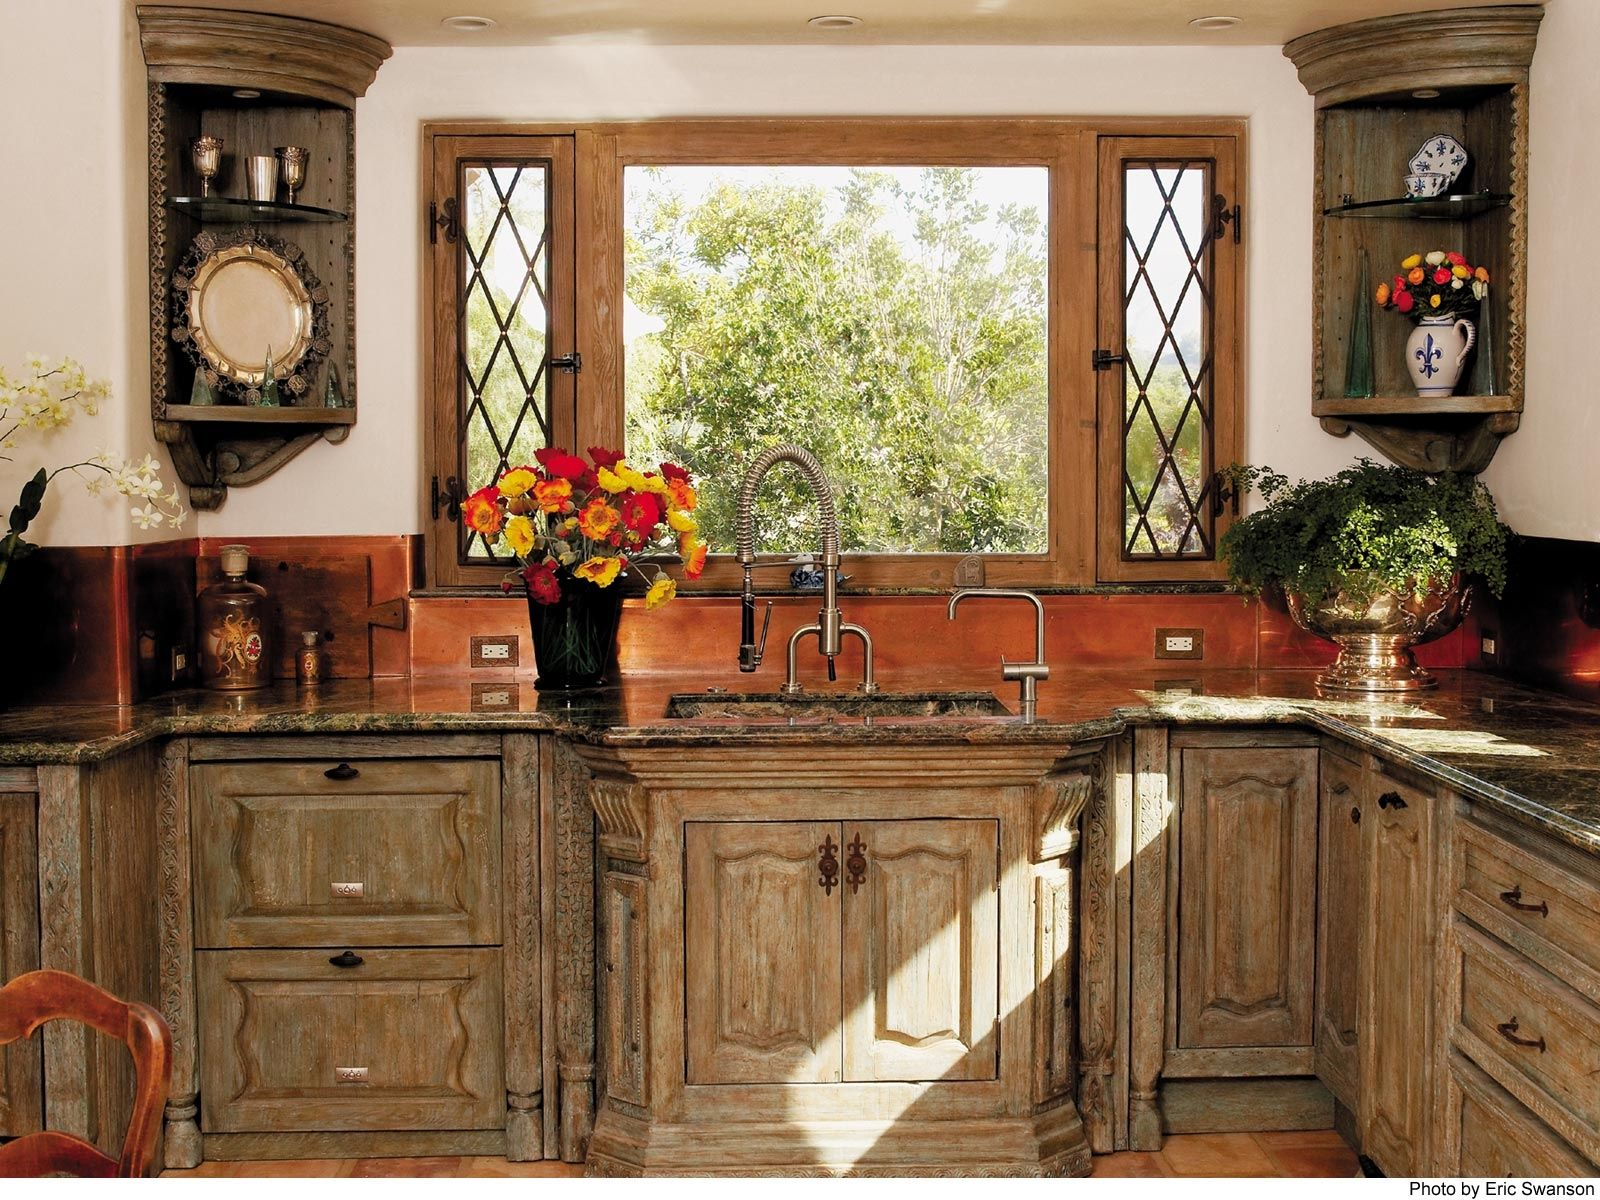 Handmade Custom Kitchen Cabinets By La Puerta Originals Inc - Kitchen cabinet stores near me